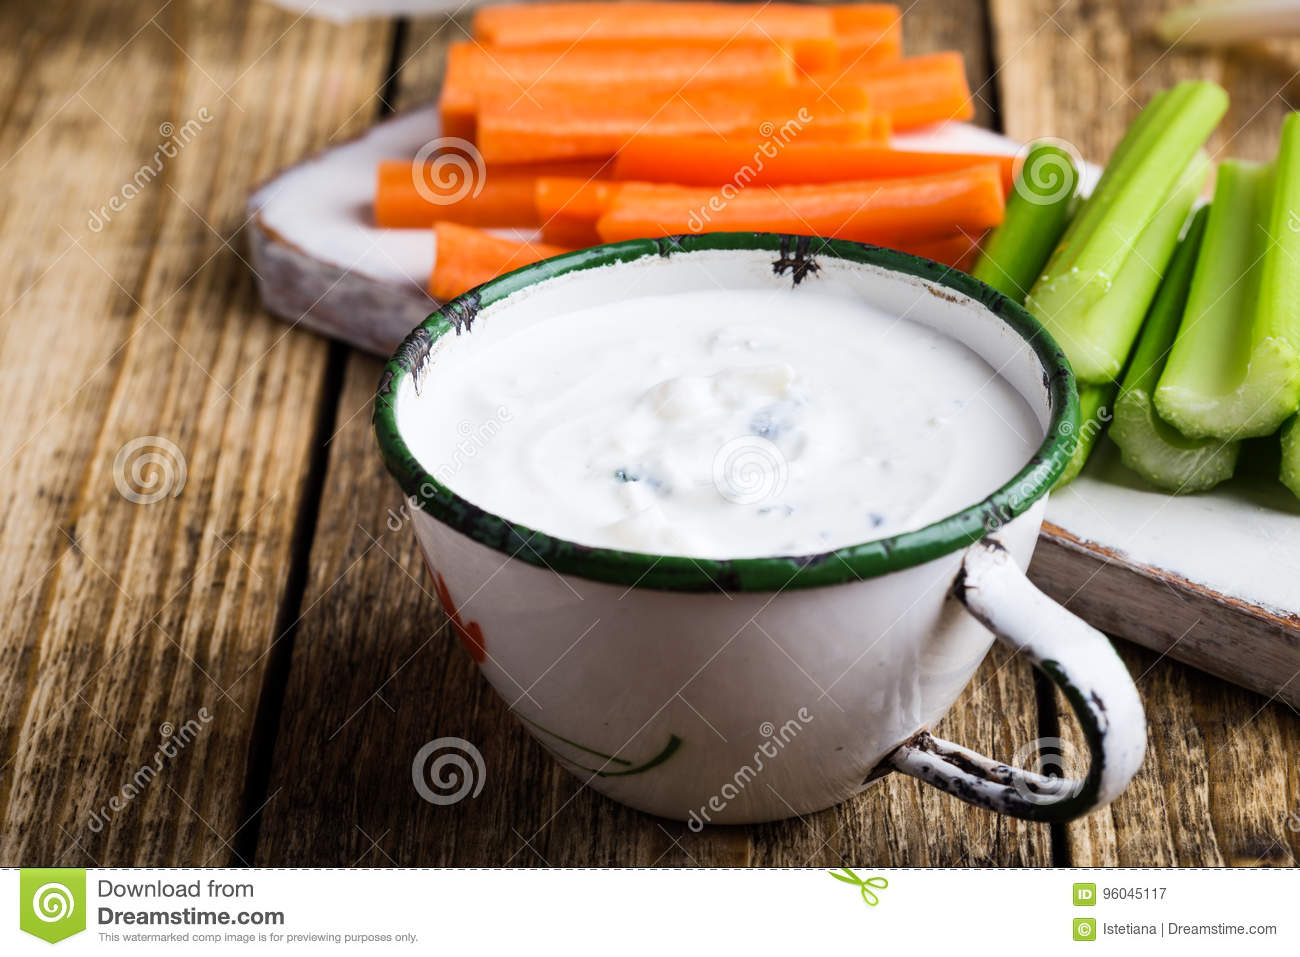 Mug Of Blue Cheese Garlic Dip Sauce With Celery And Carrot Stick Stock Image Image Of Delicious Gorgonzola 96045117